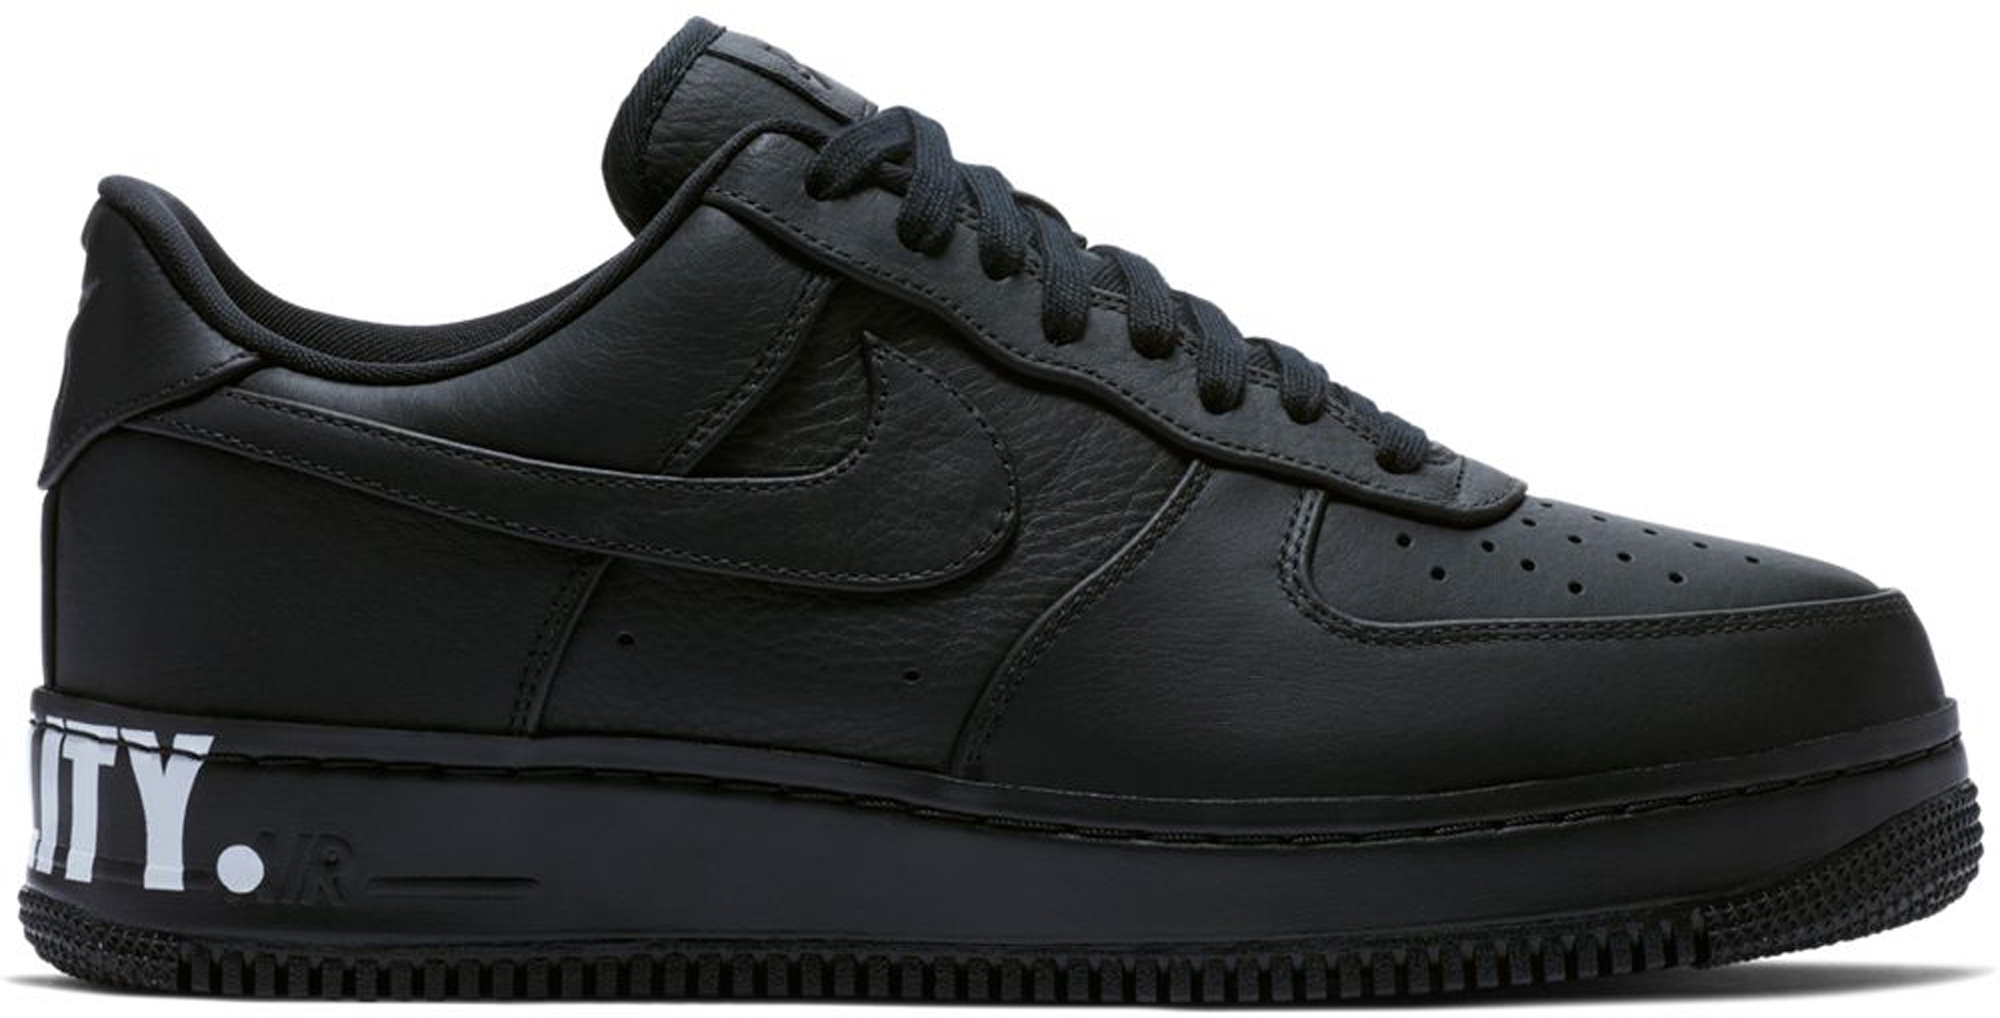 Air Force 1 Low CMFT Equality Black History Month (2018)